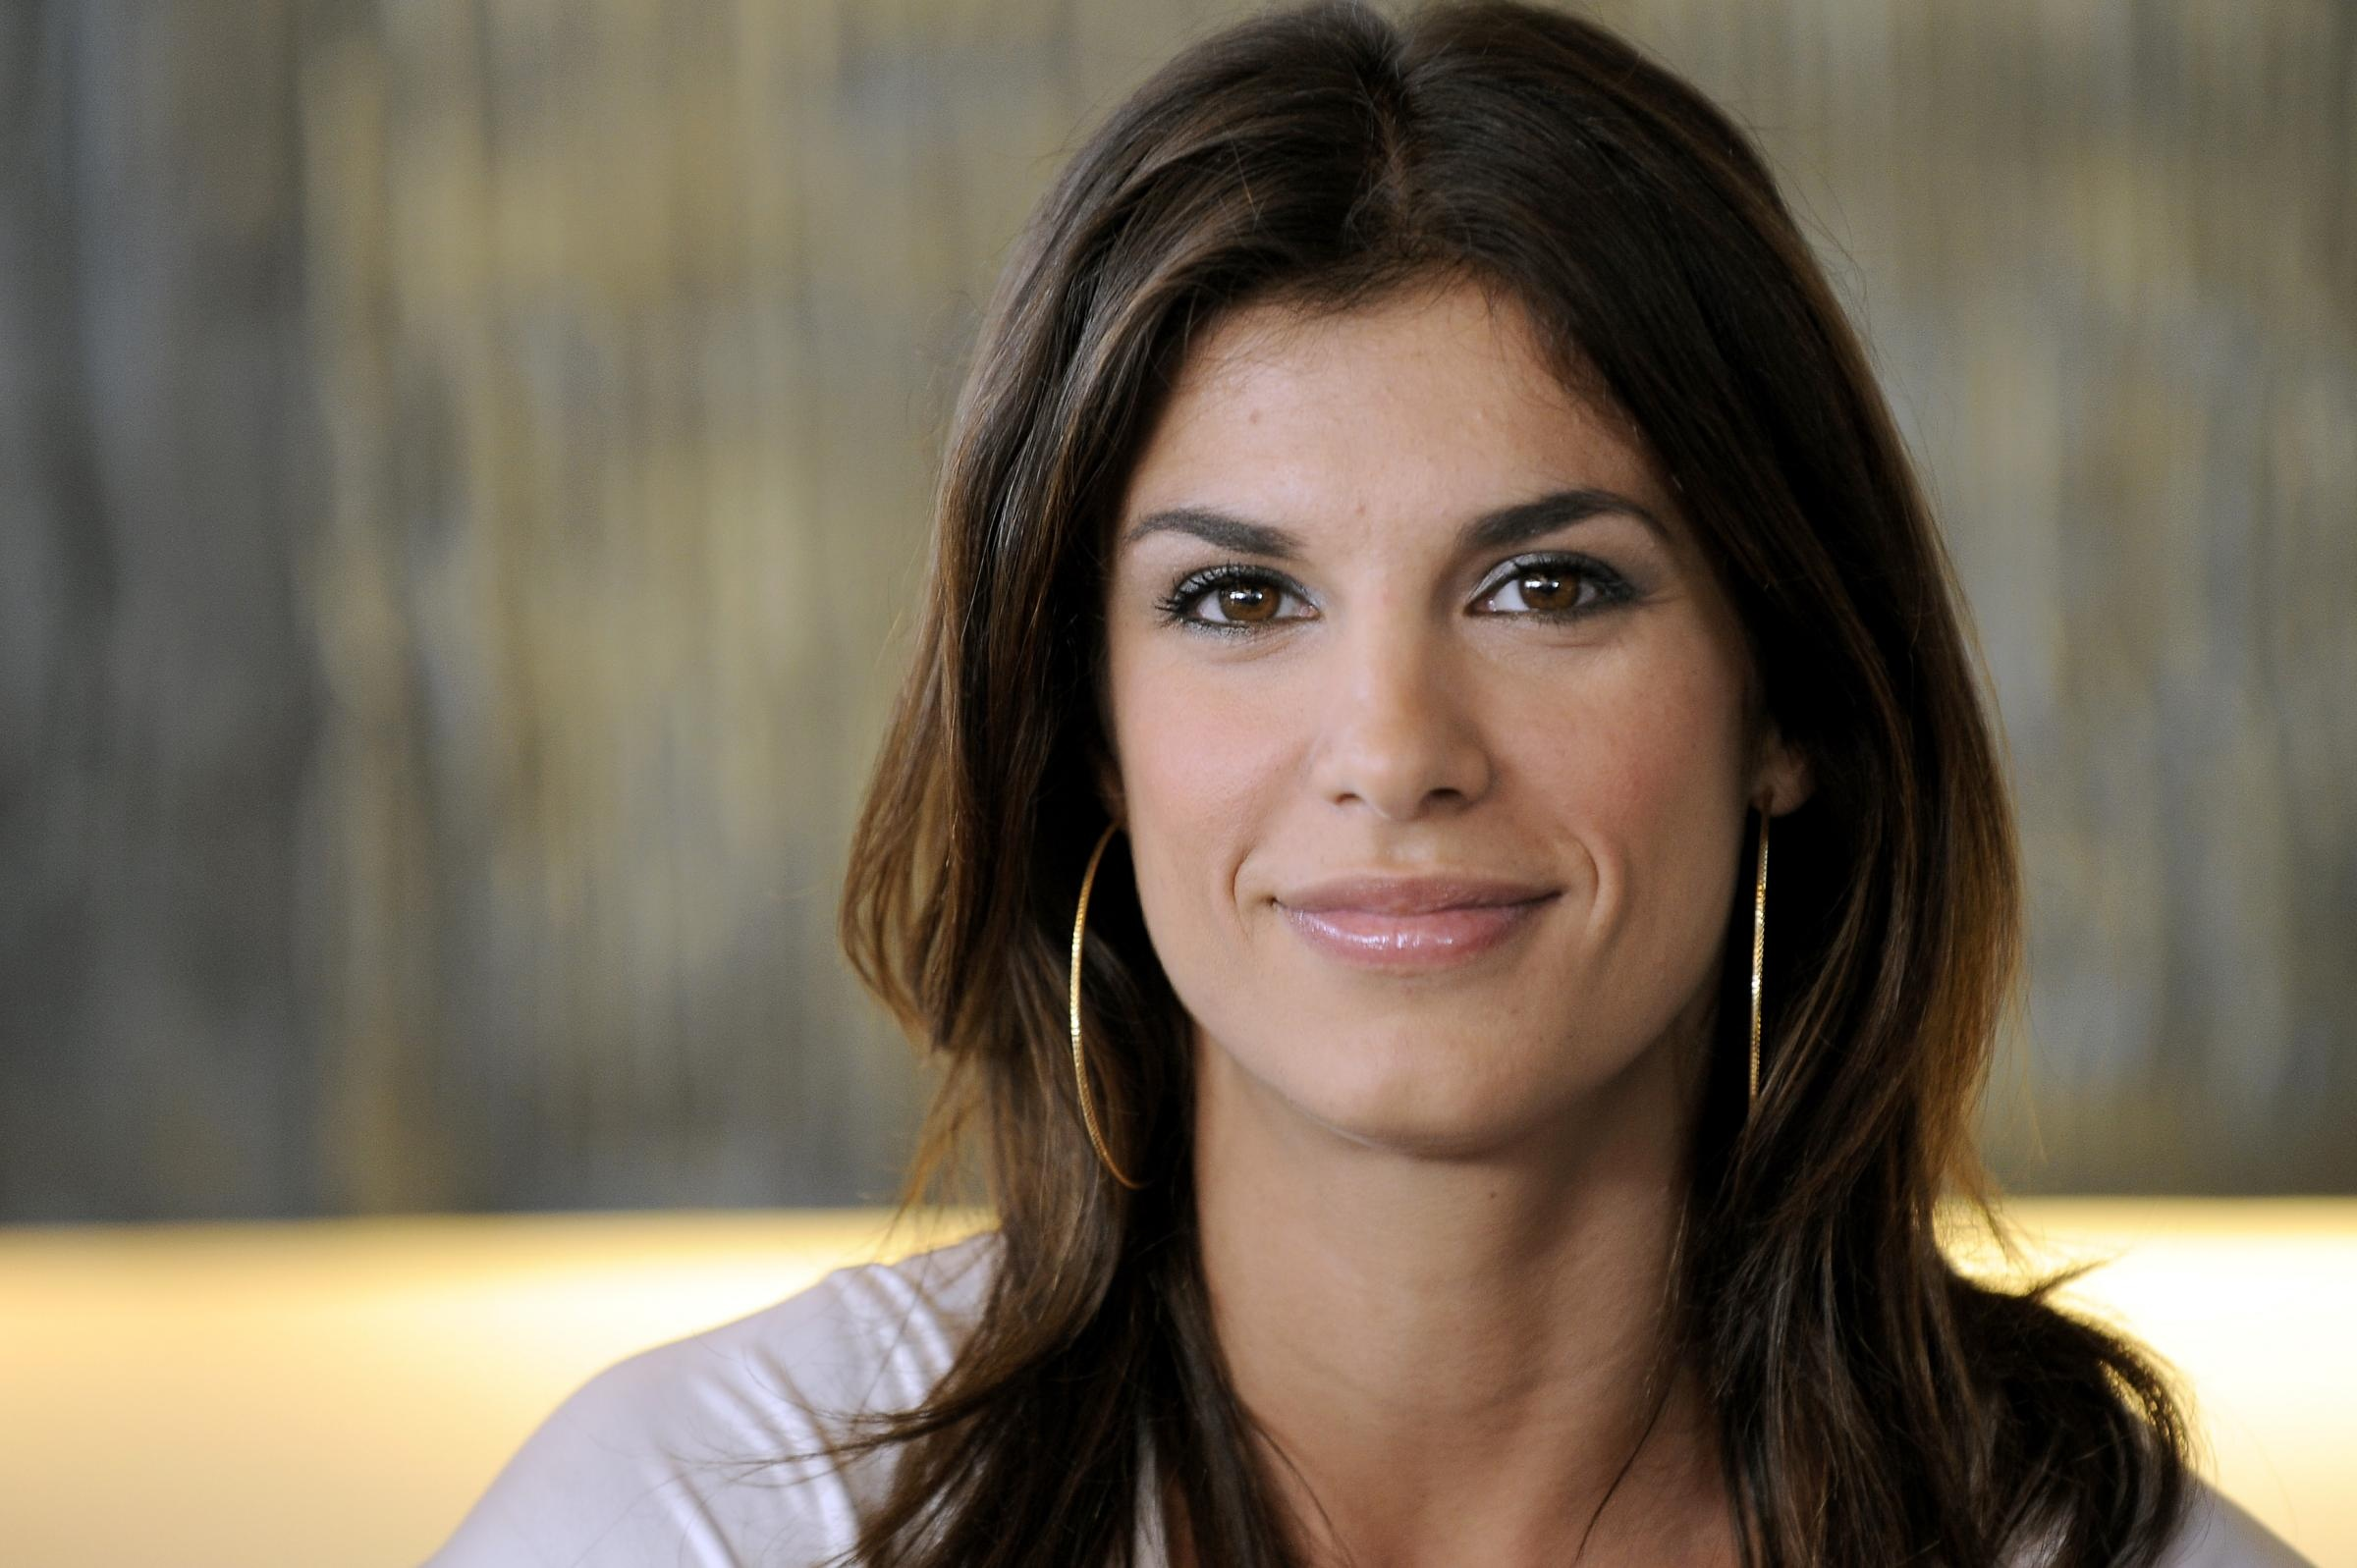 HQ Elisabetta Canalis Wallpapers | File 537.8Kb